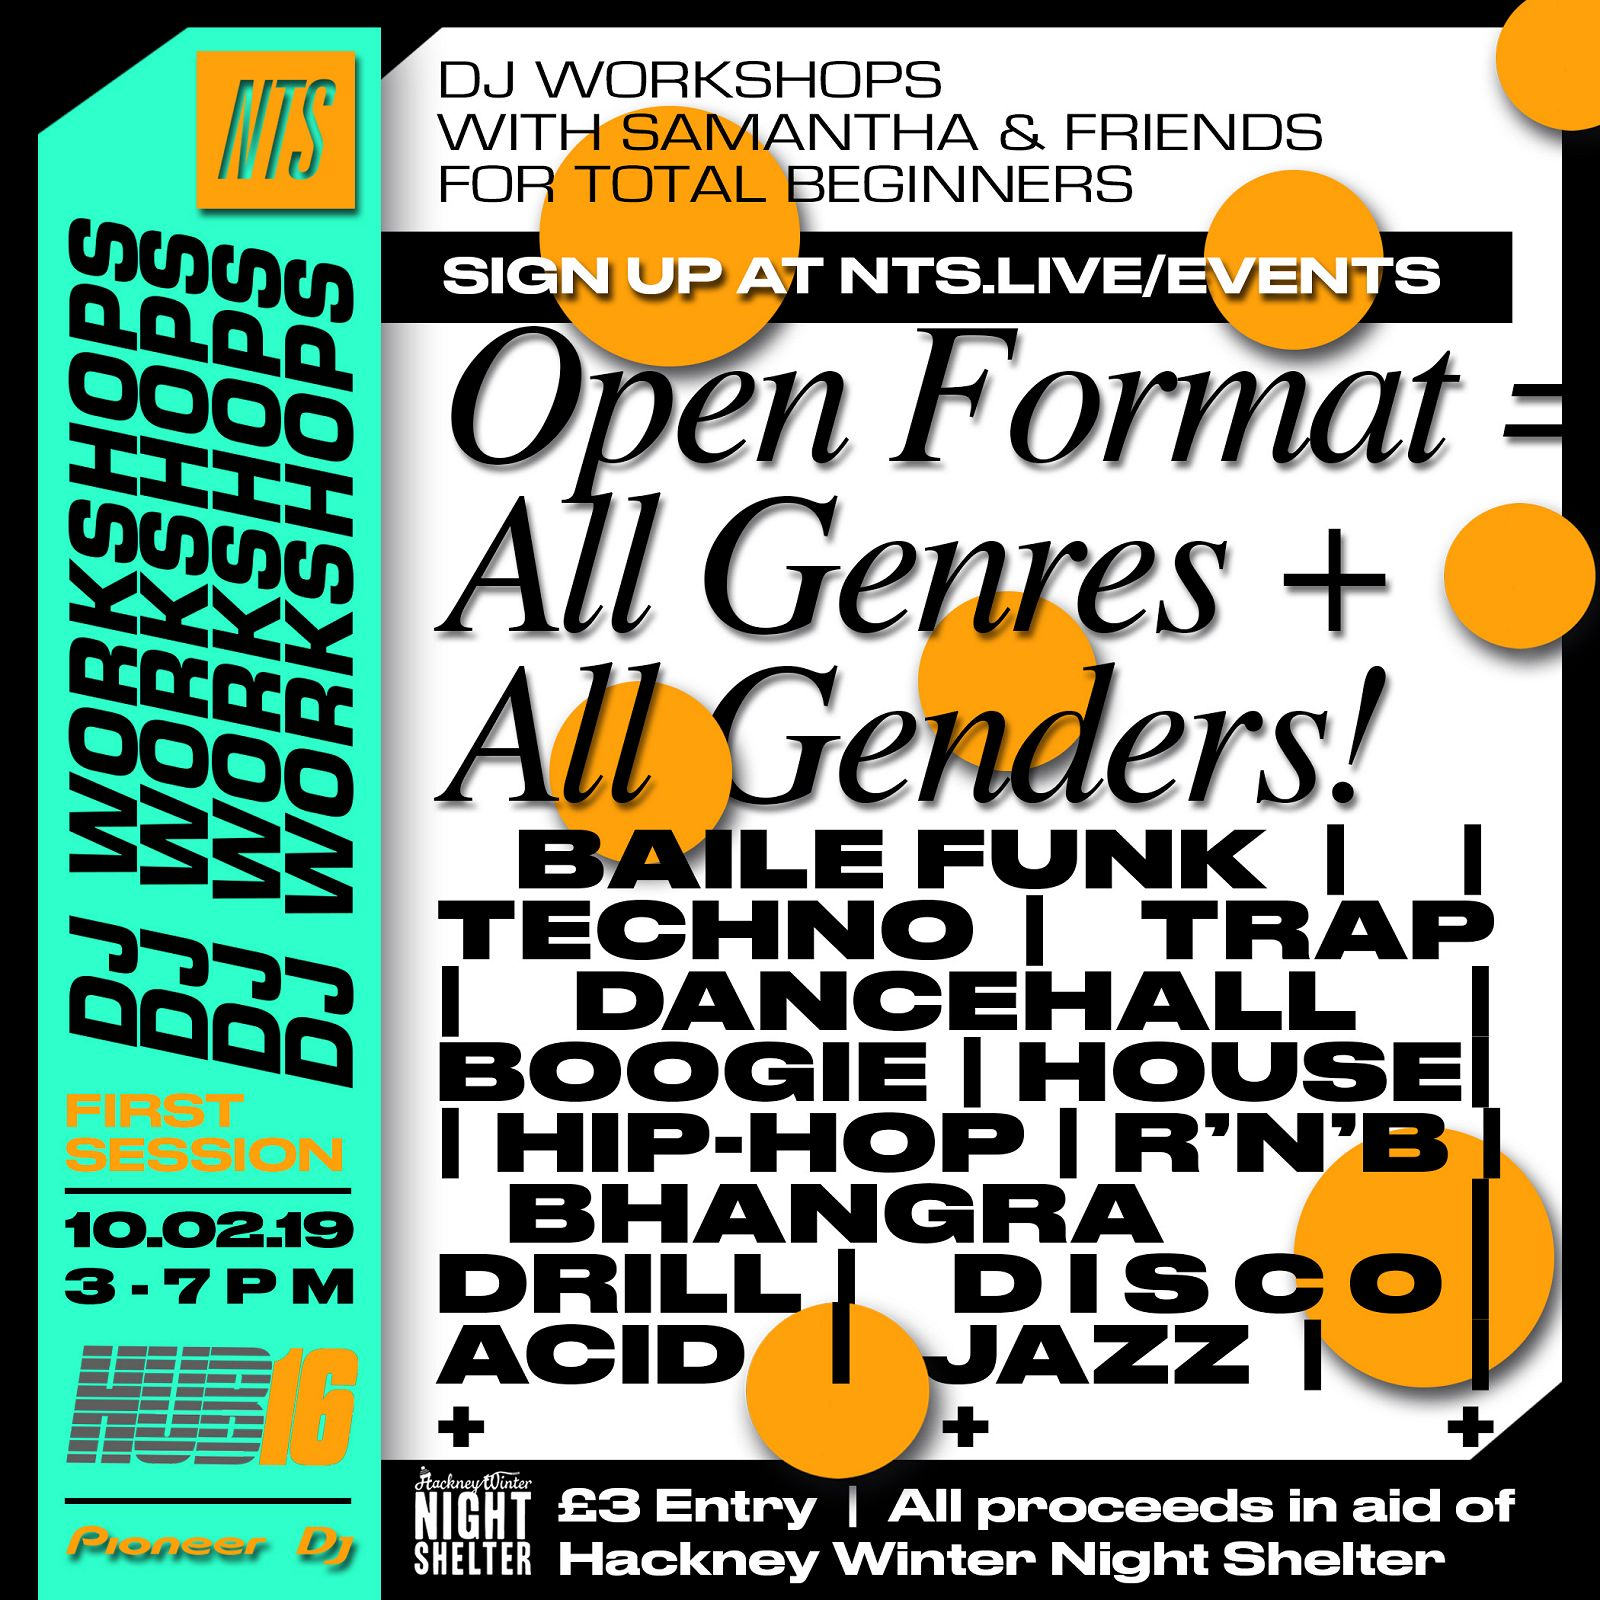 NTS x HUB16 DJ Workshop | NTS